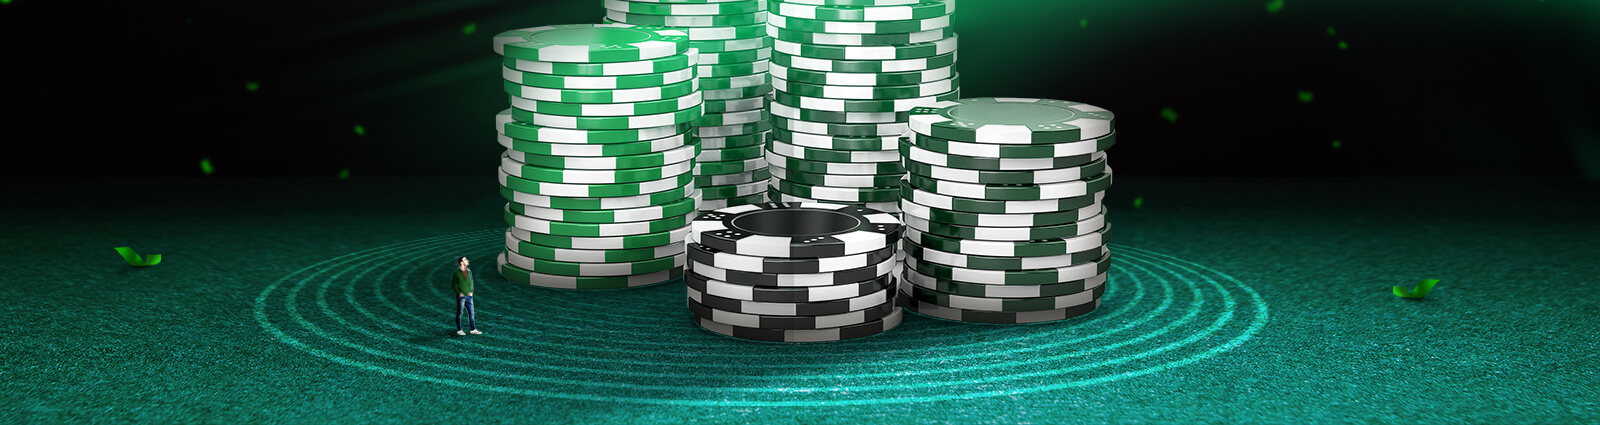 promo-page-Chips-Unibet-250k-2019-UB-Promo-Page-Banners